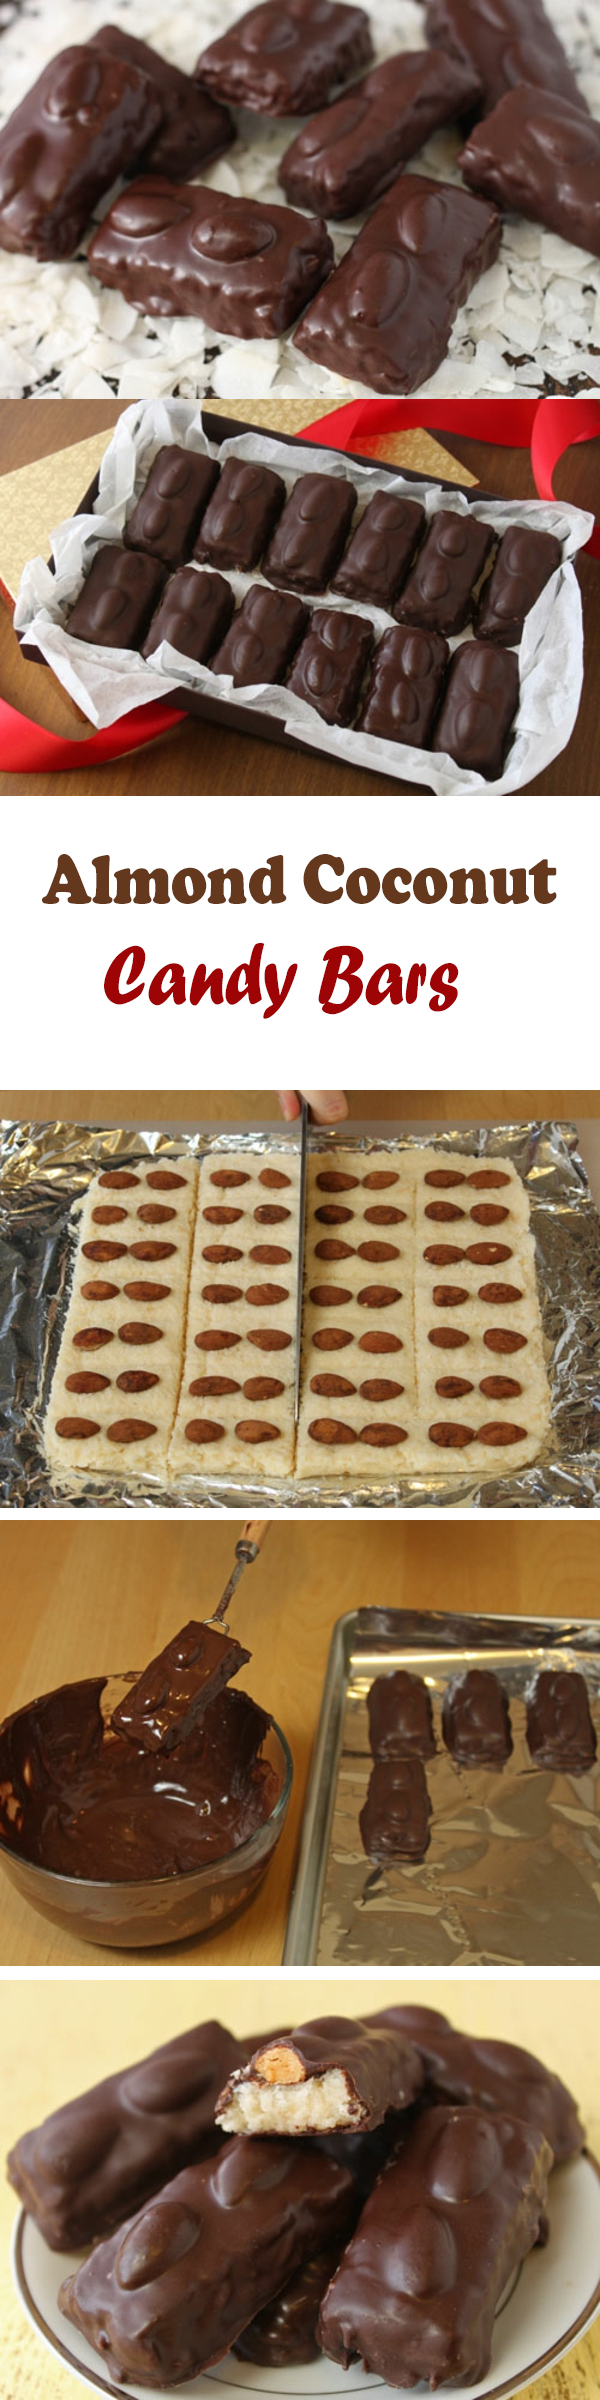 Almond Coconut Candy Bars